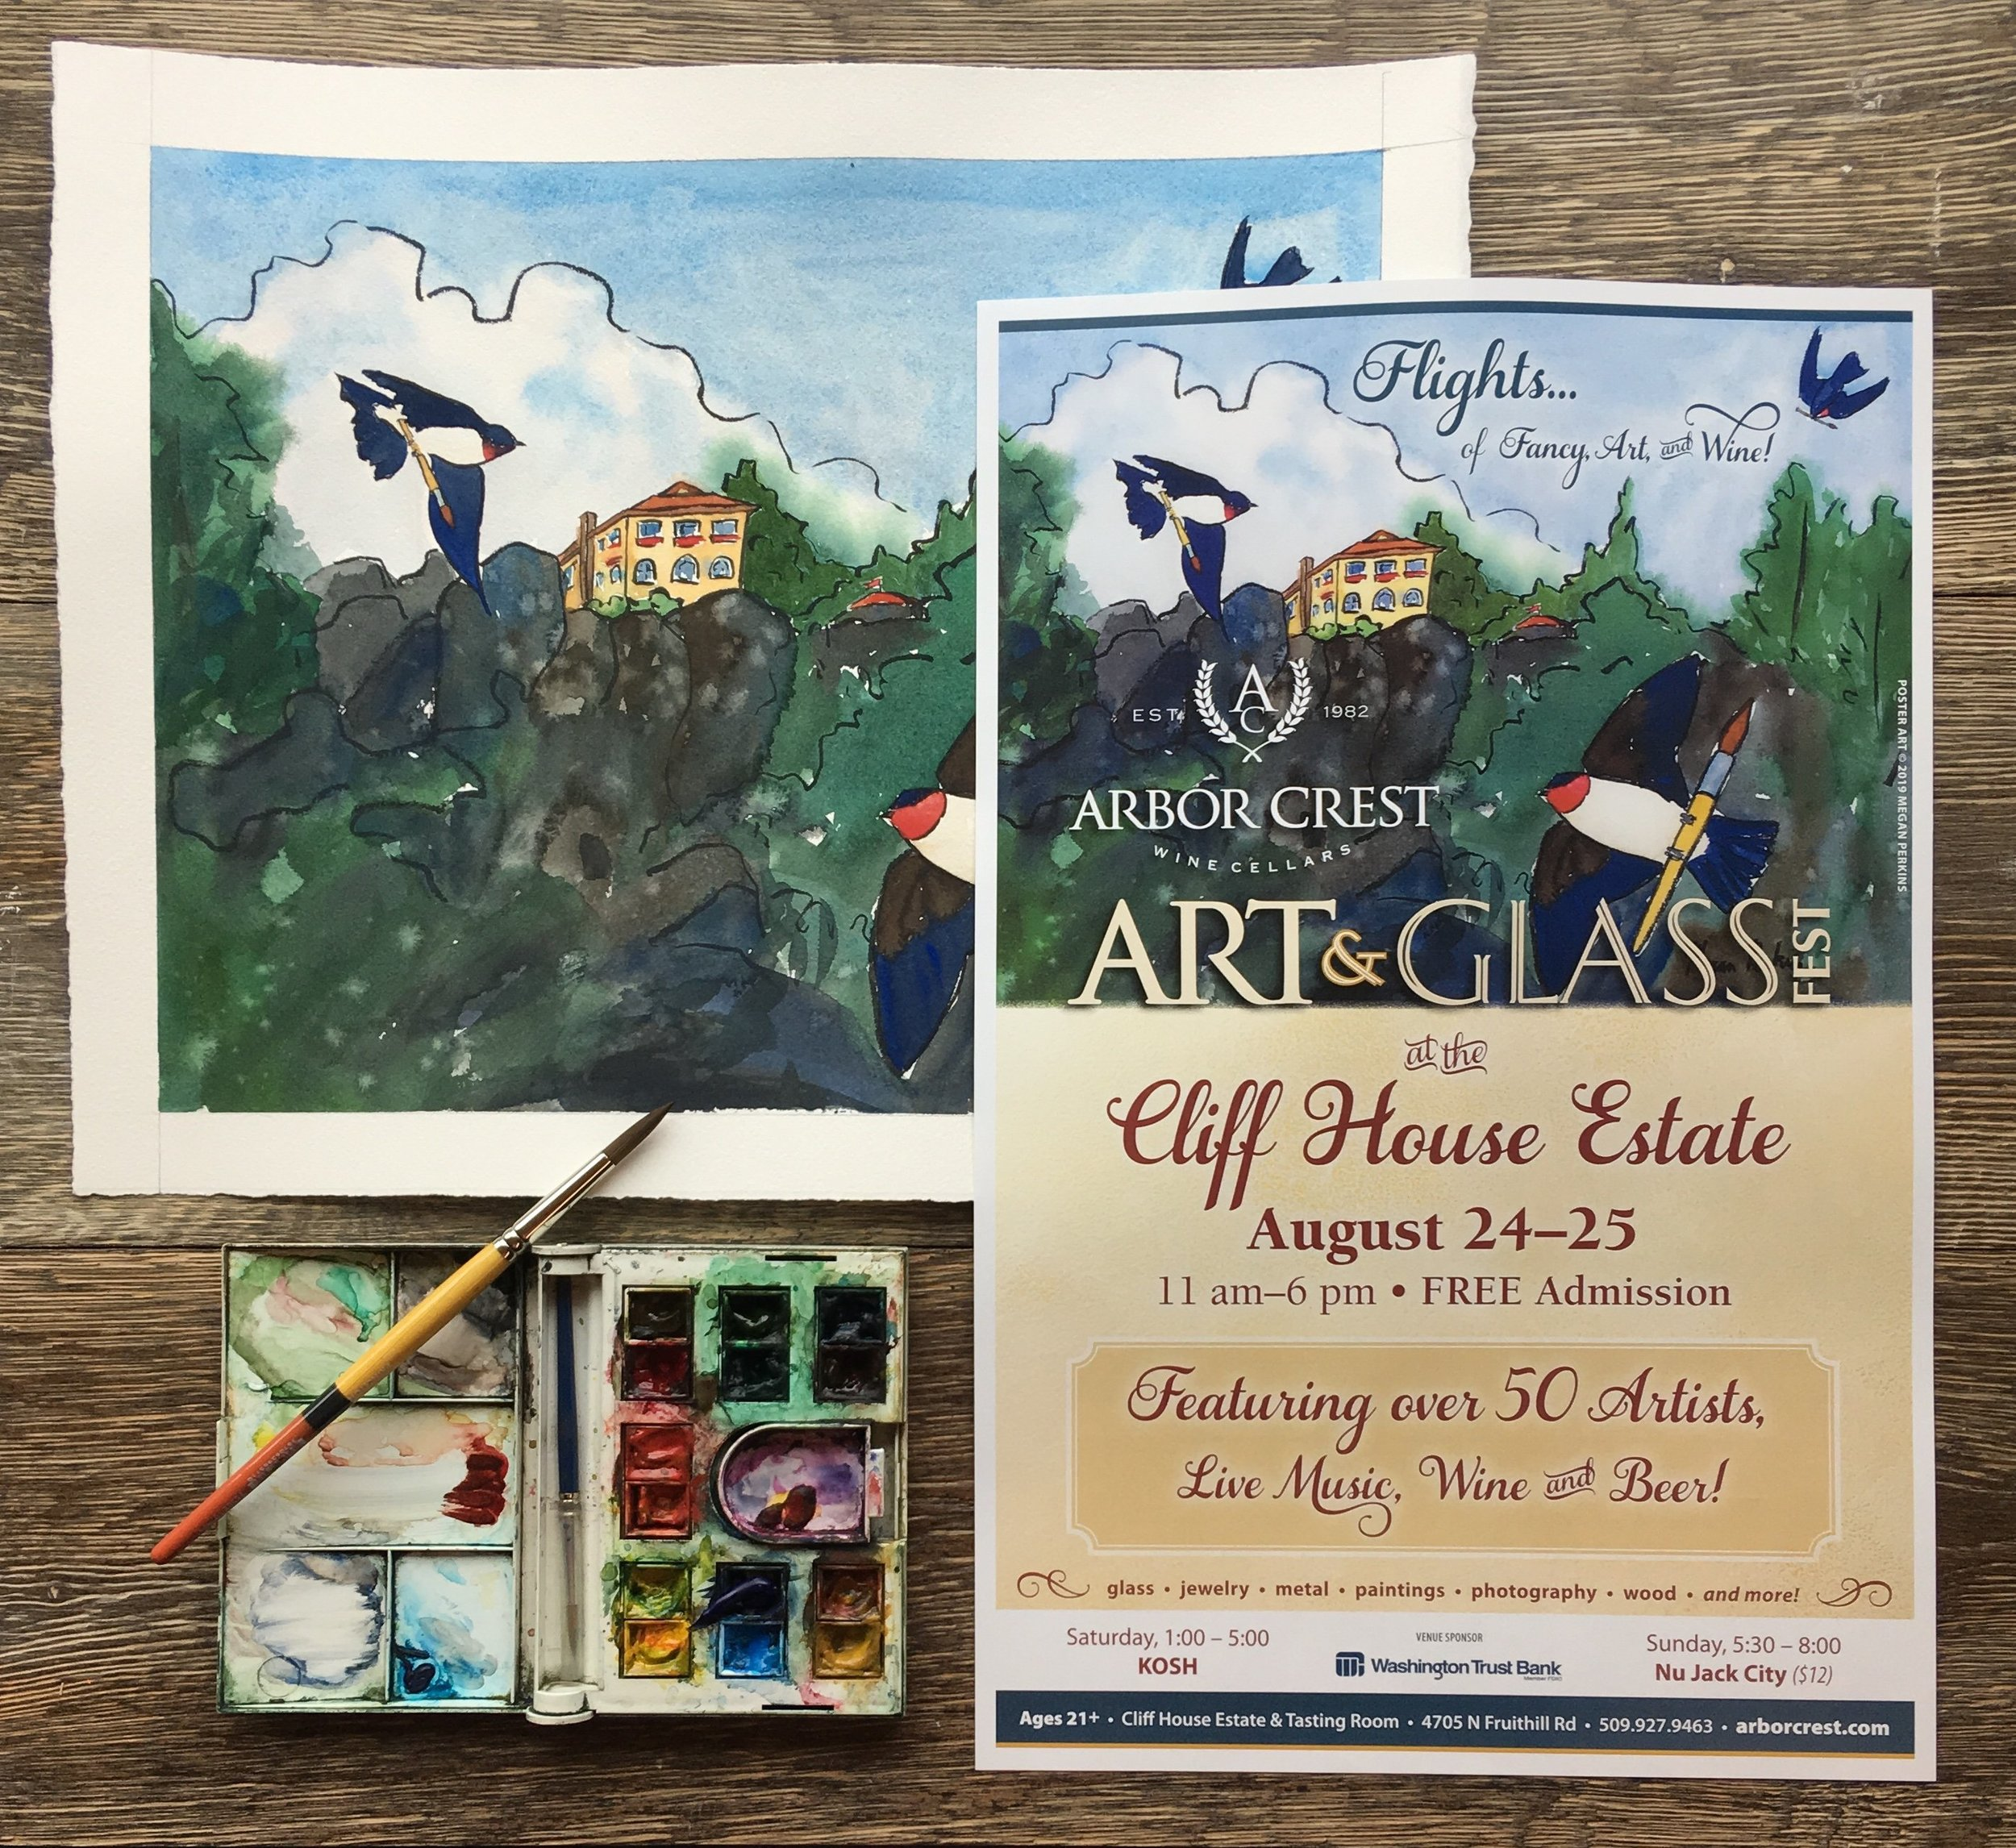 Arborcrest Art & Glass is another organization that reached out to me! I'm going to actually be at this show with all my paintings and prints AND my new calendar this Saturday and Sunday. I hope you guys will be able to come by and say hi!